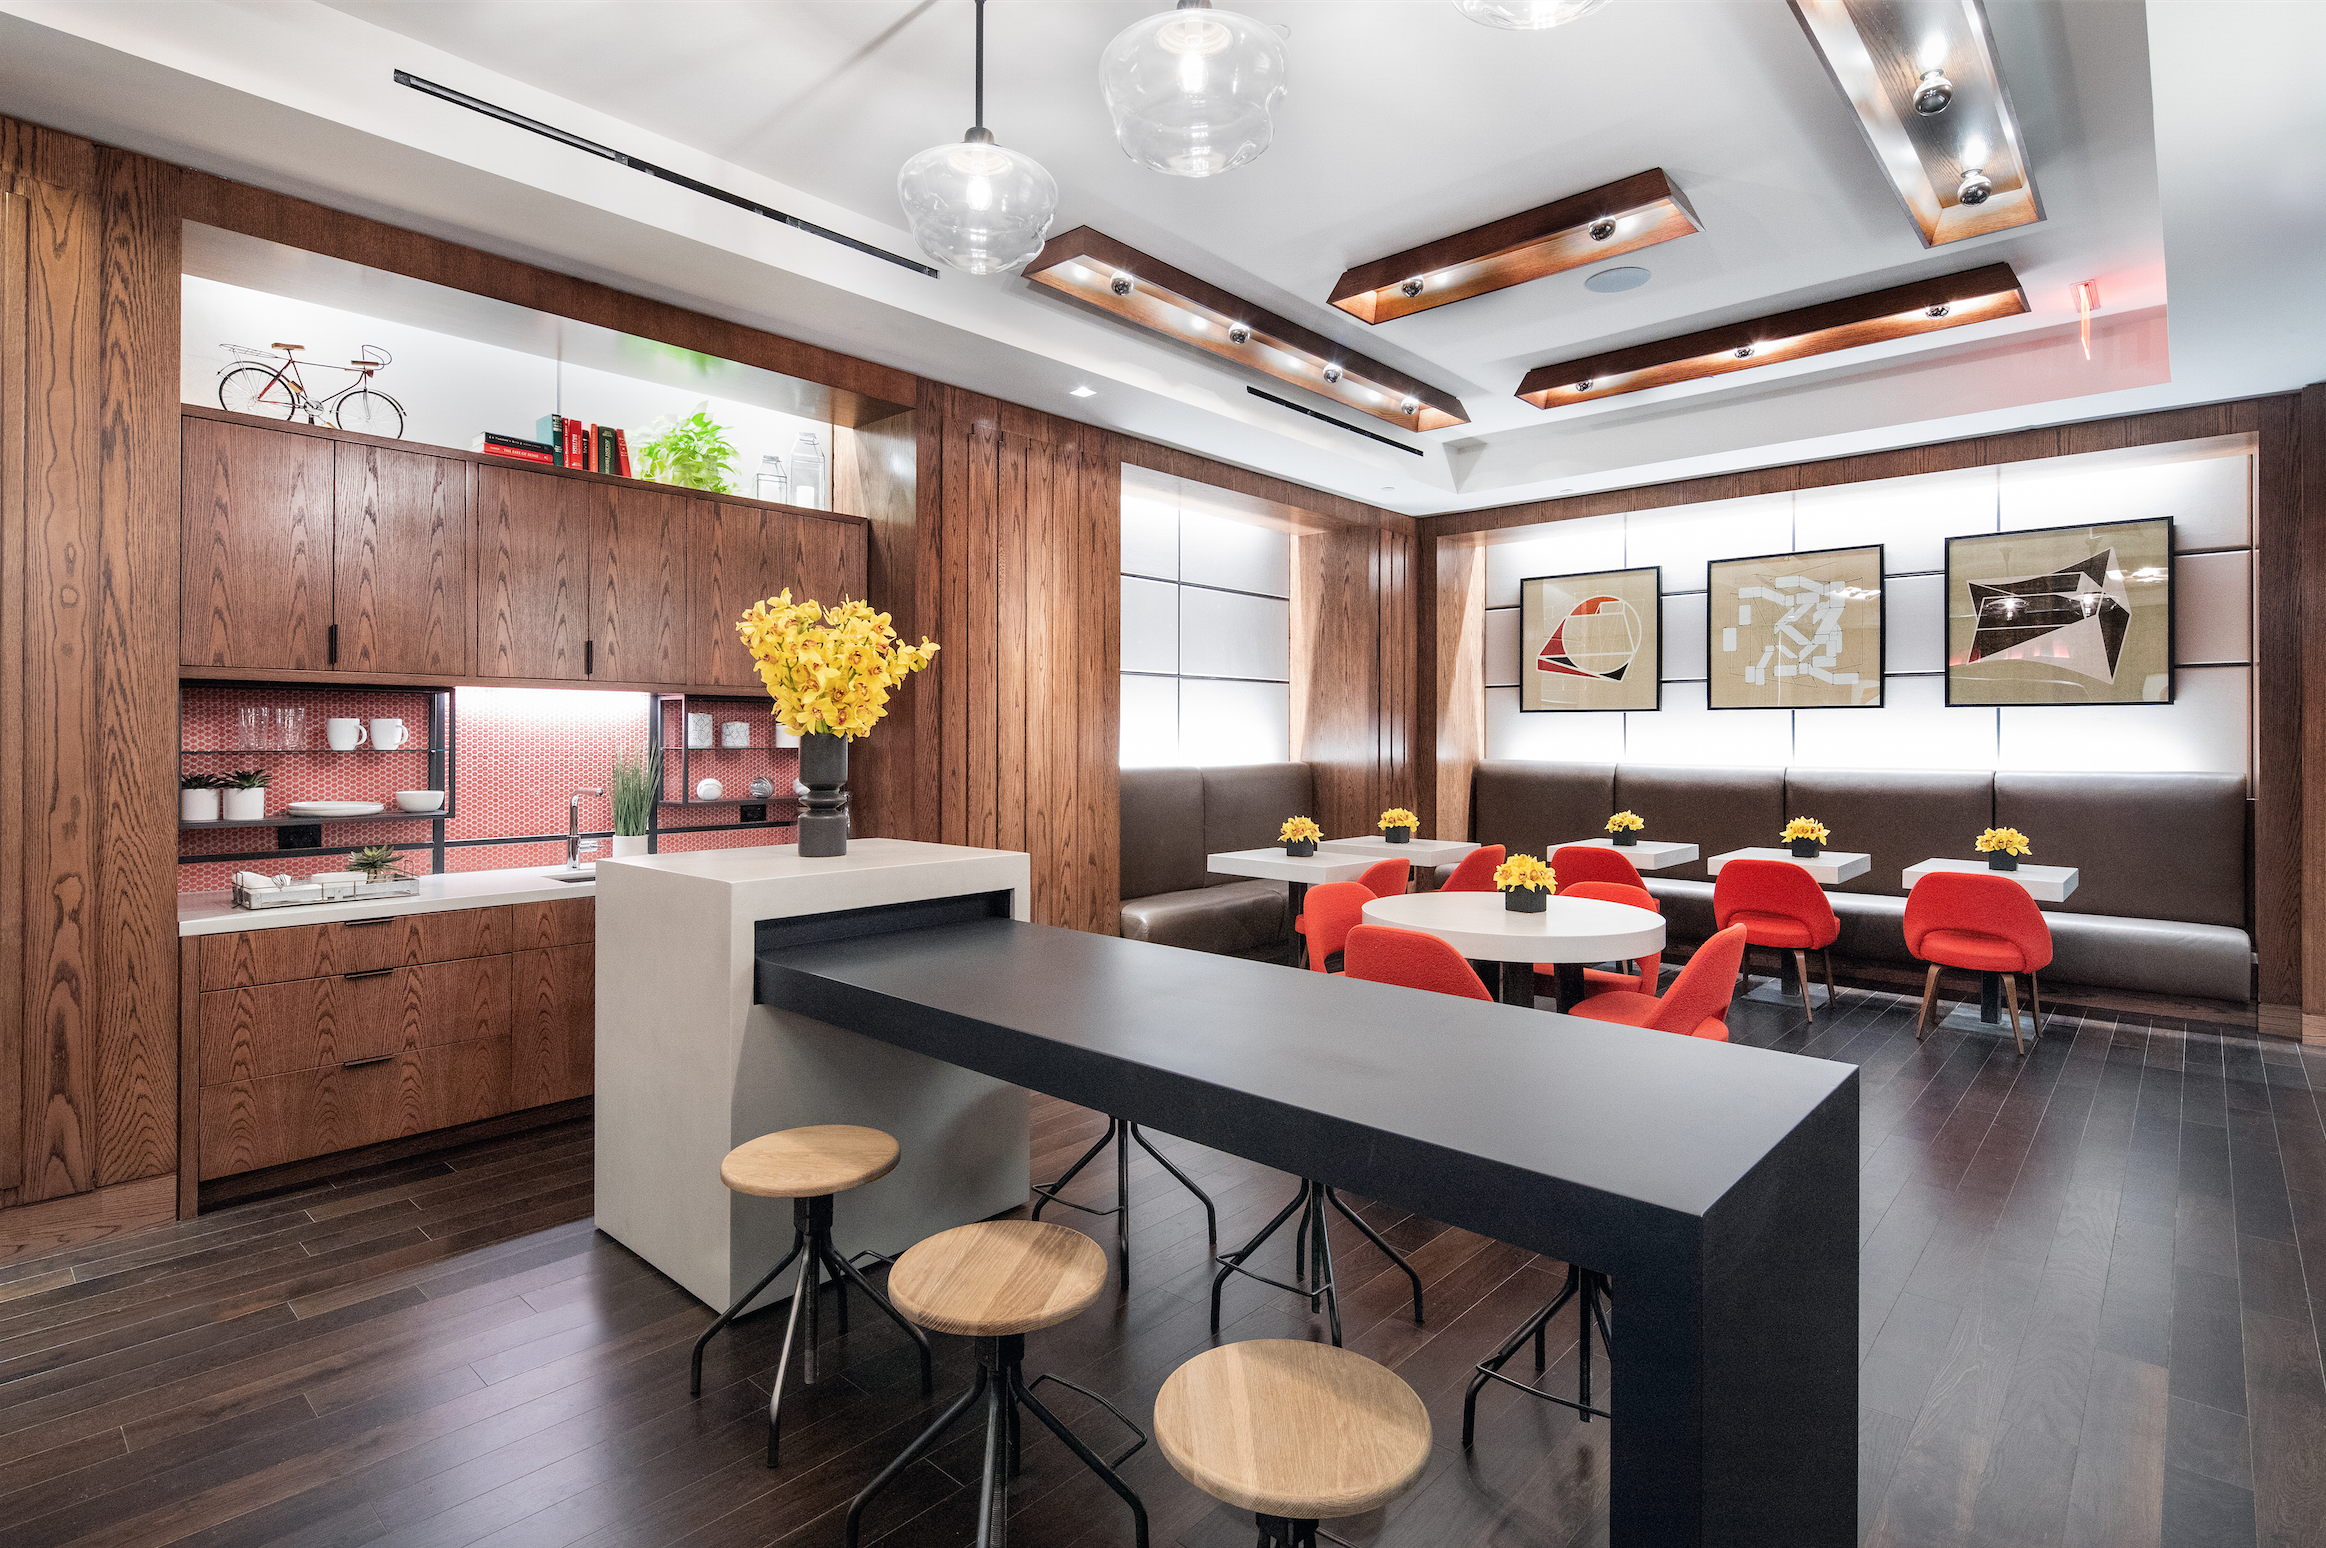 Extell Reveals The Swankiest Amenities In The East Village At Their Newest Luxury Rental, EVGB